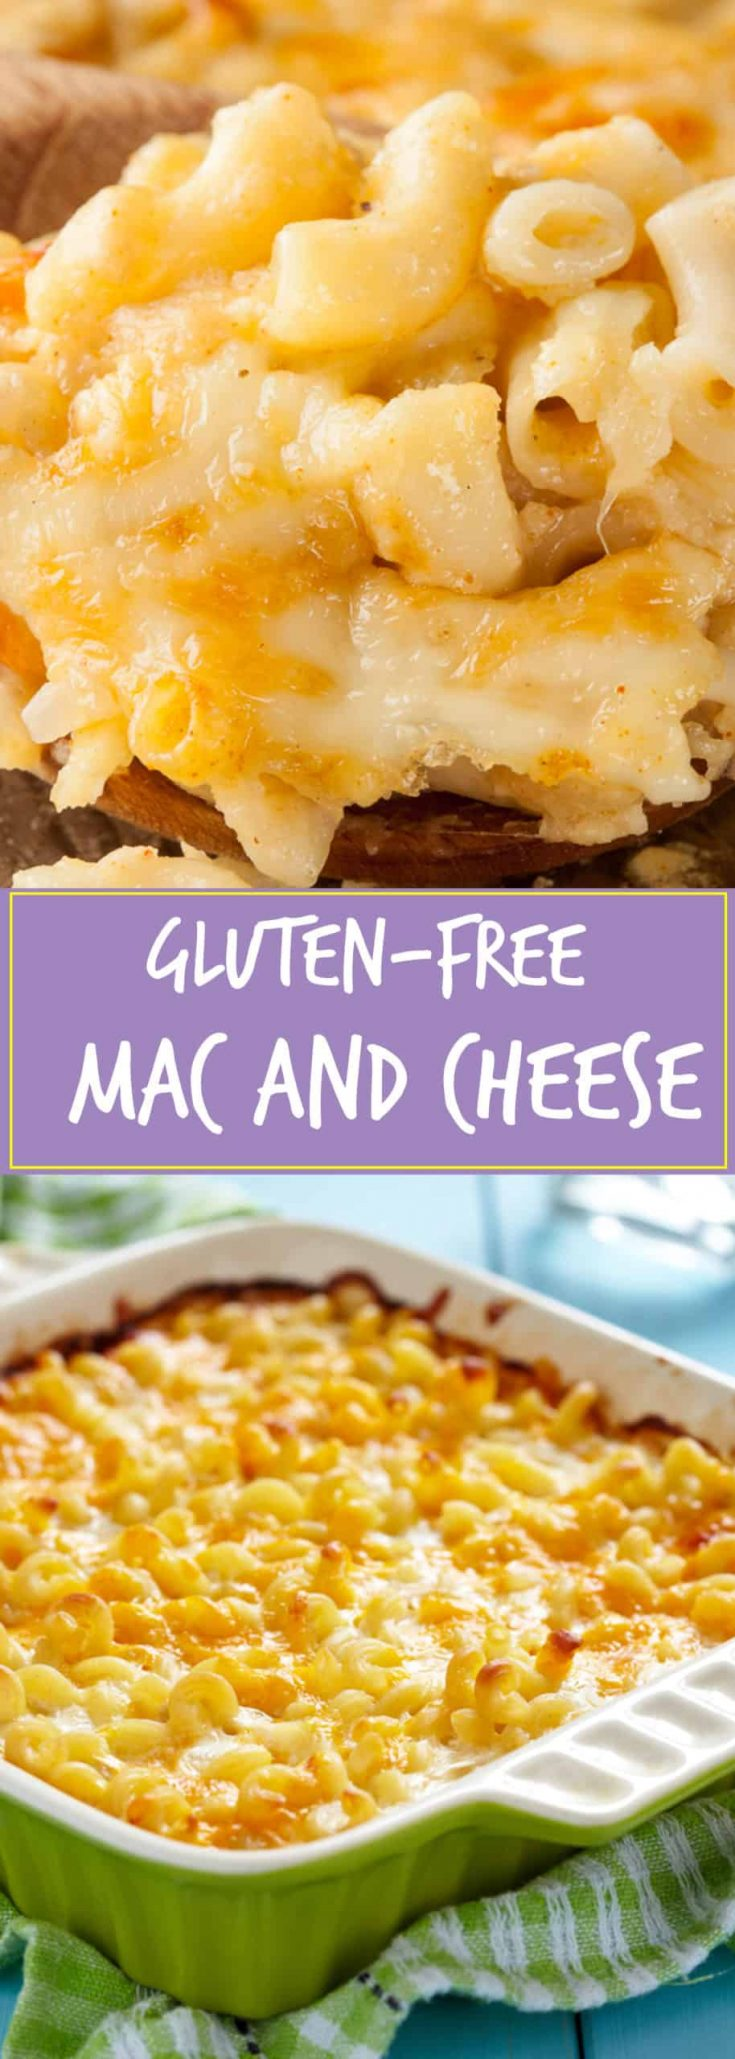 One bite of this gluten-free mac and cheese will satisfy your comfort food fix. This baked side dish is filled with rich cheddar cheese and Parmesan cheese!